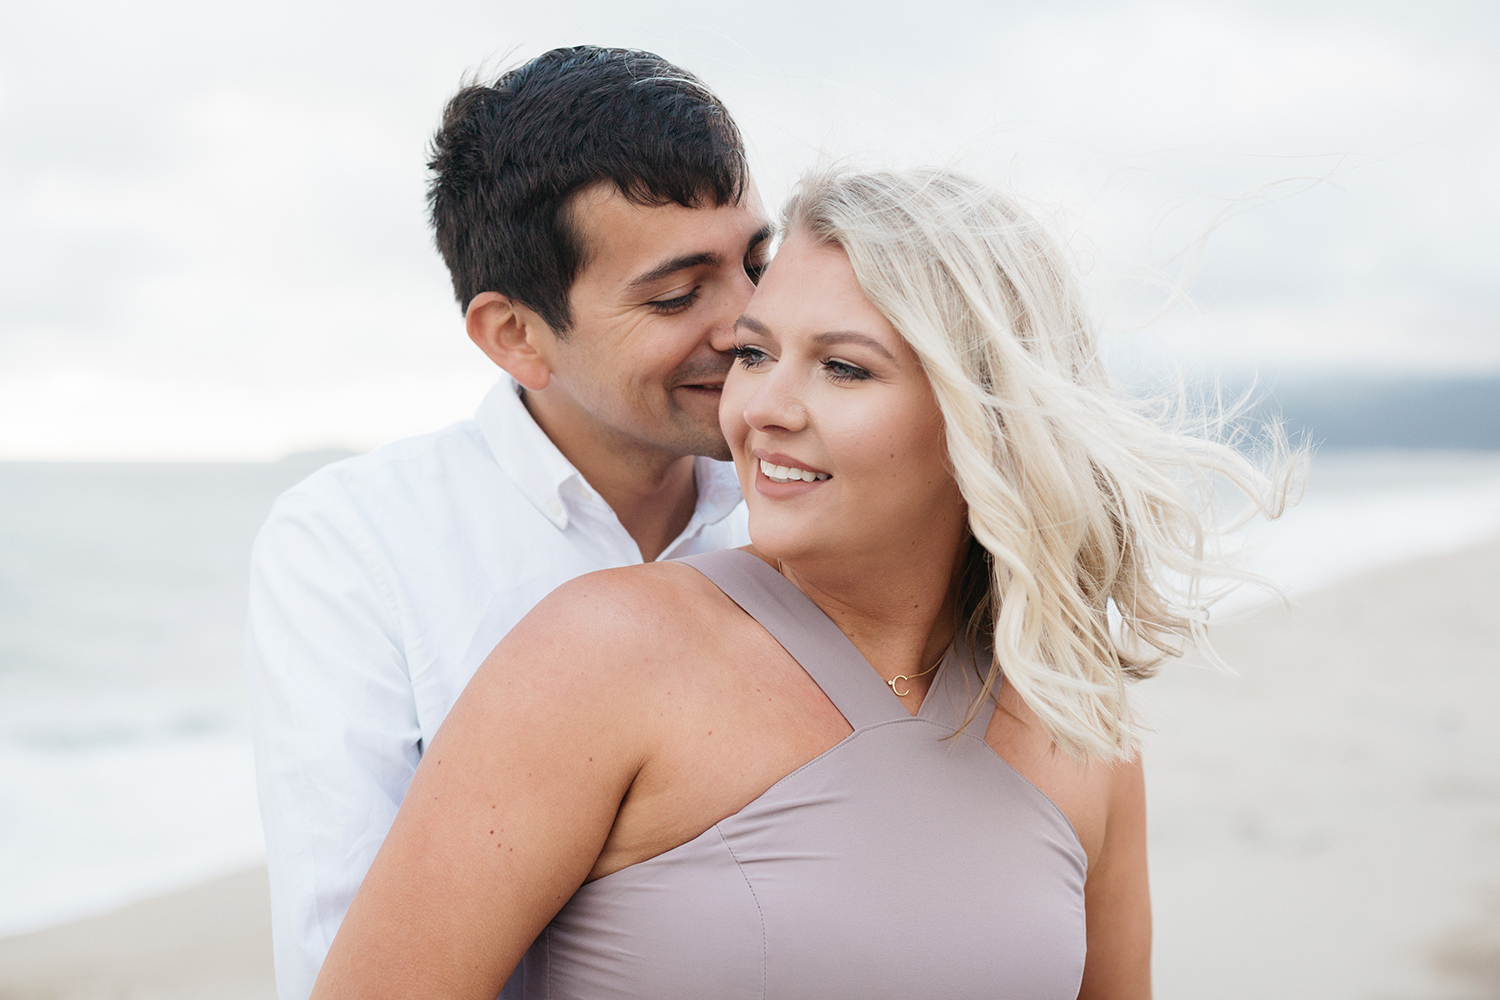 cori and andrew's engagement photos in half moon bay california.